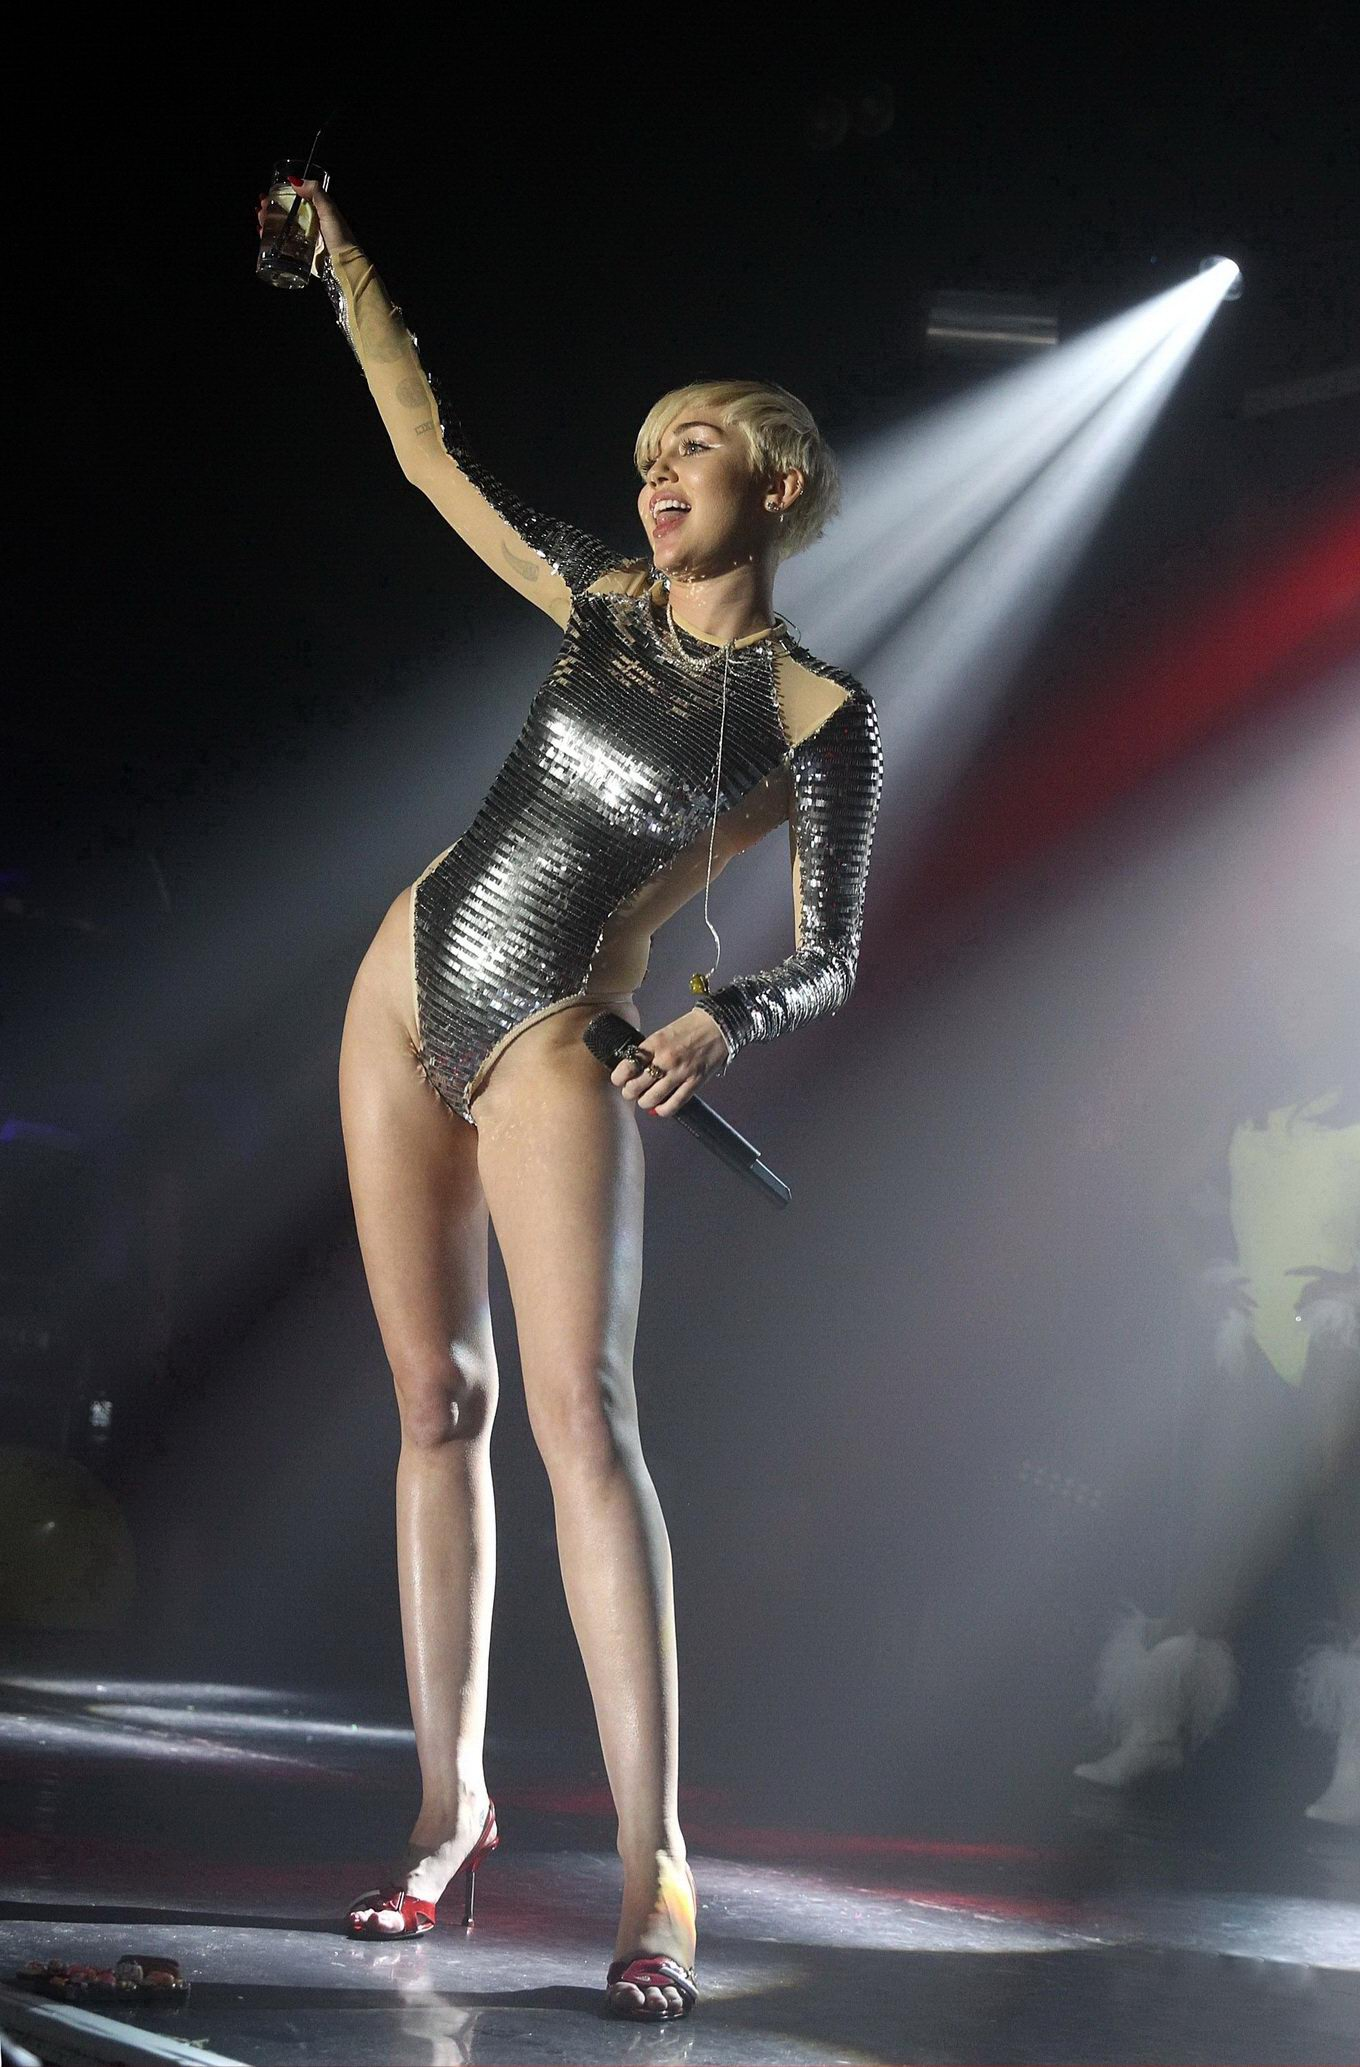 miley cyrus nude on stage